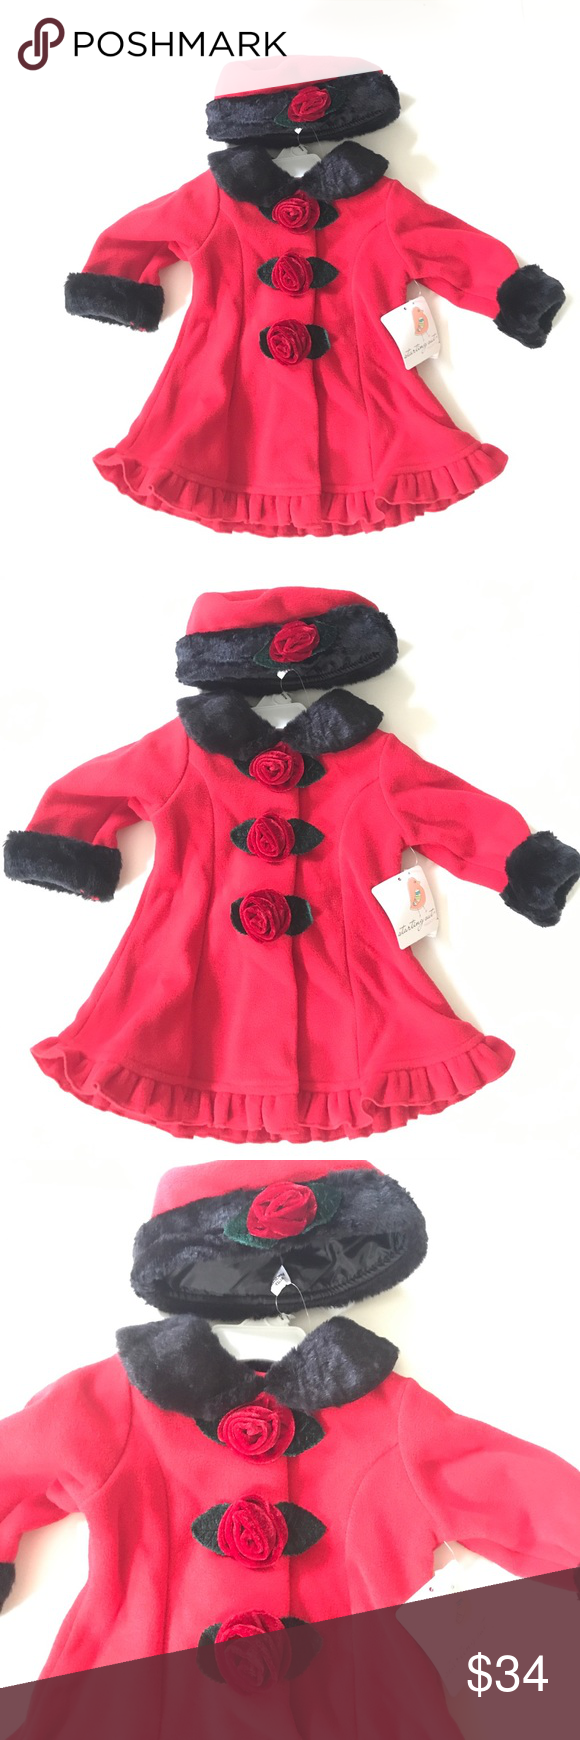 a19b150fc420 Baby Girl Red Fleece Winter Coat Hat Set Beautiful red coat set for ...